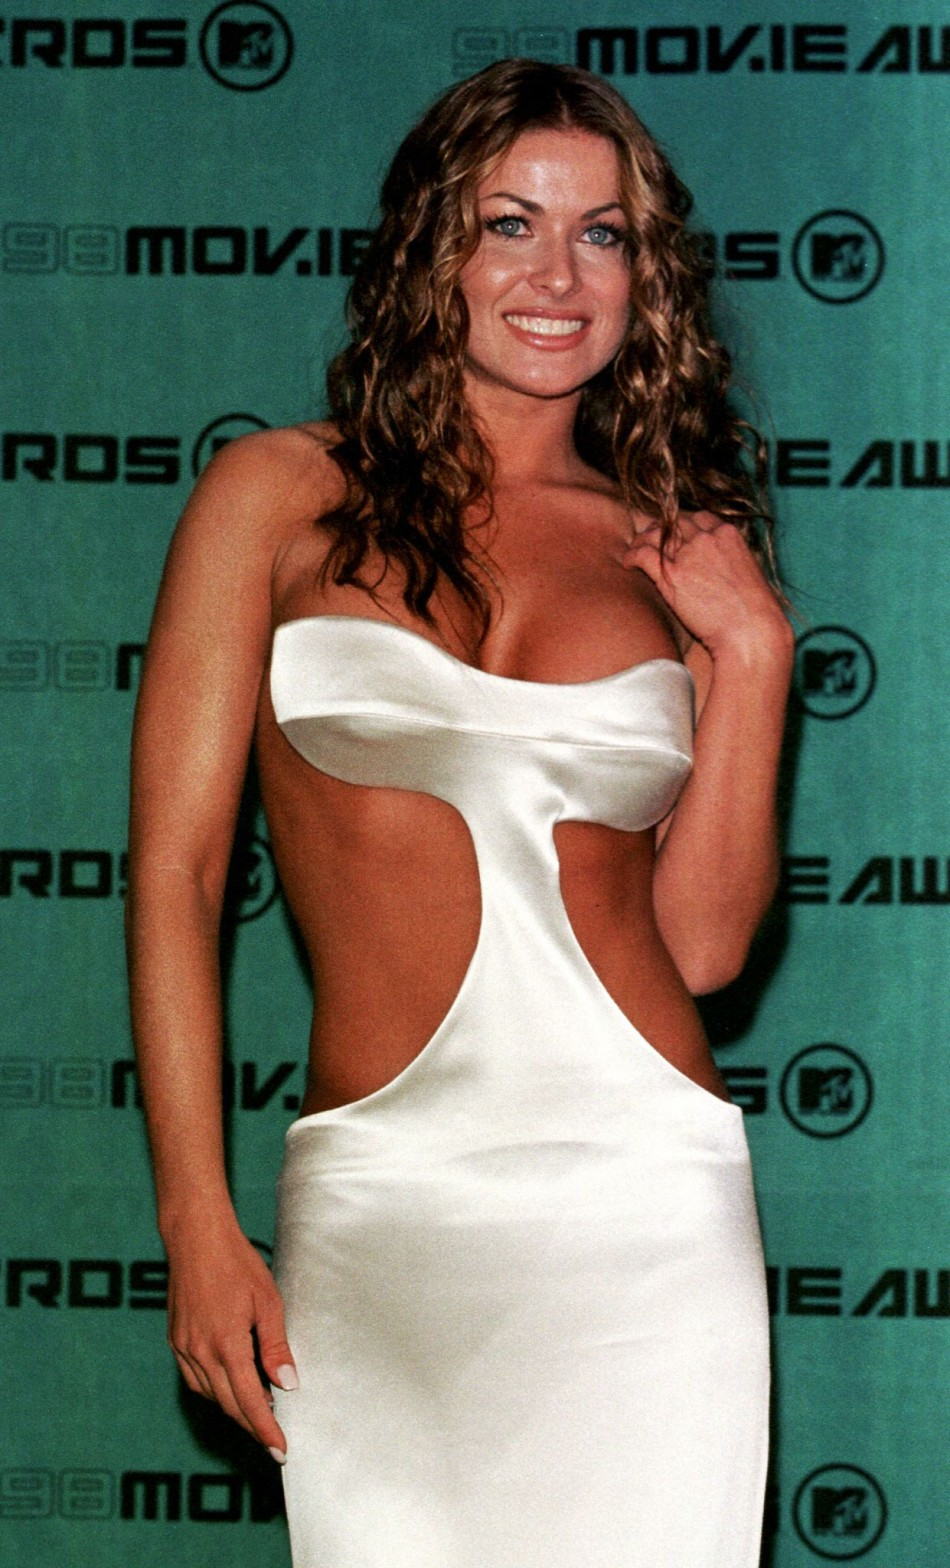 Television personality Carmen Electra poses for photographers at the 1998 MTV Movie Awards which were taped May 30 in Santa Monica. Electra co-hosts